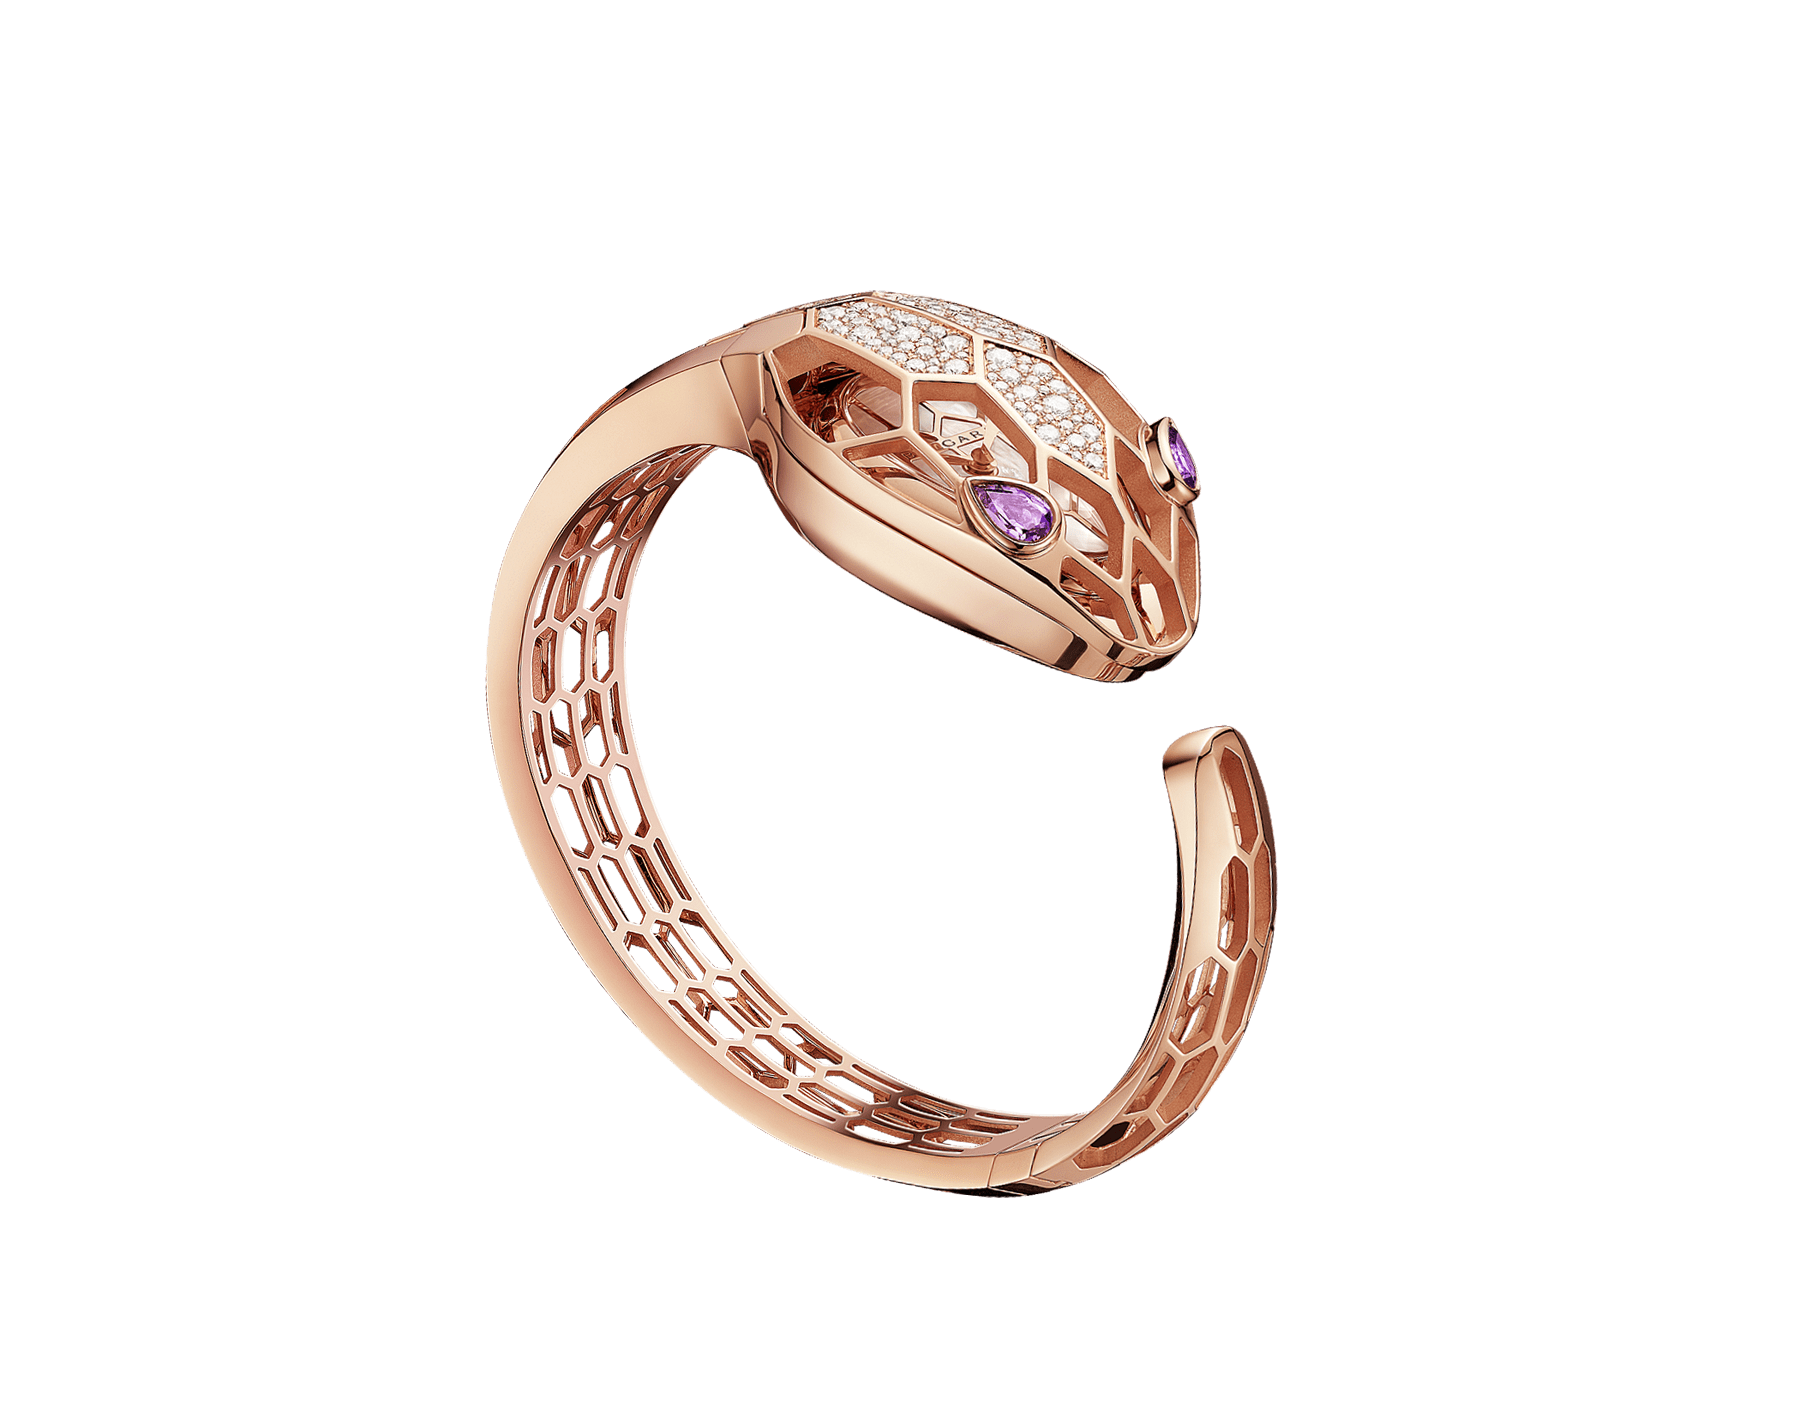 Serpenti Misteriosi Secret Watch with 18 kt rose gold skeletonized case set with round brilliant-cut diamonds, white mother-of-pearl dial, 18 kt rose gold skeletonized bangle bracelet and pear-shaped amethyst eyes. SrpntMister-SecretWtc-rose-gold image 8